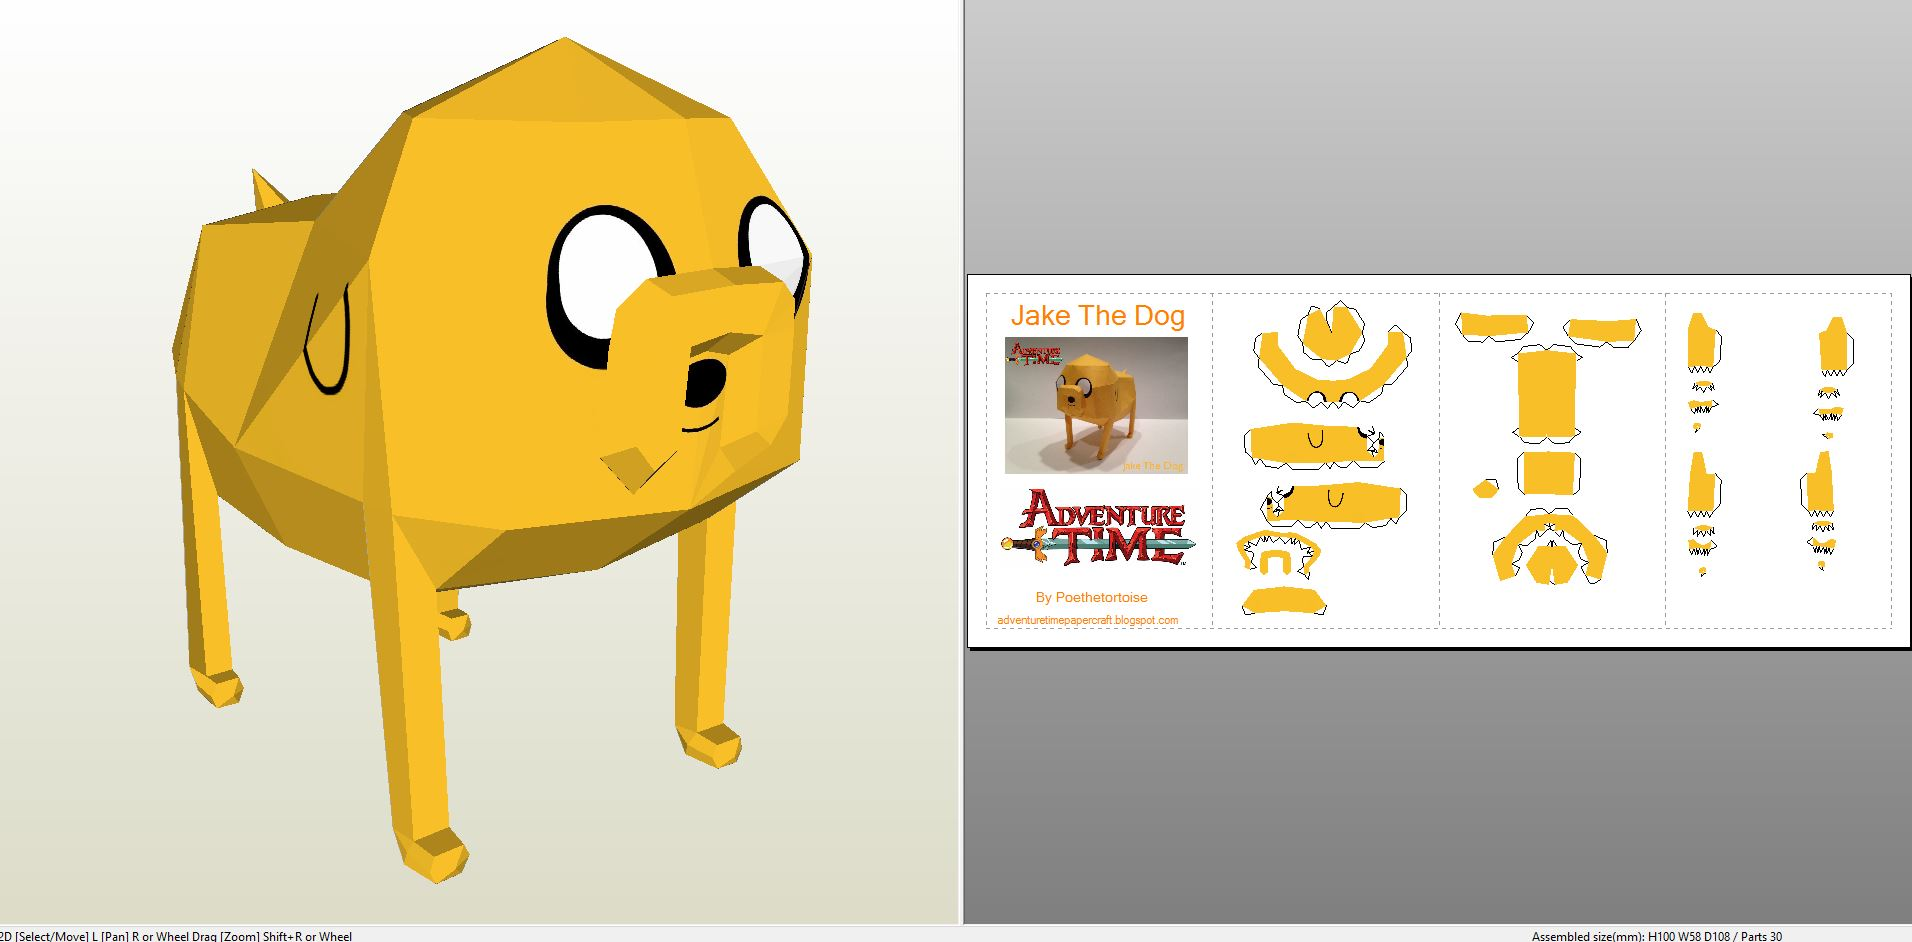 Papercraft Pdo File Template For Adventure Time Jake The Dog